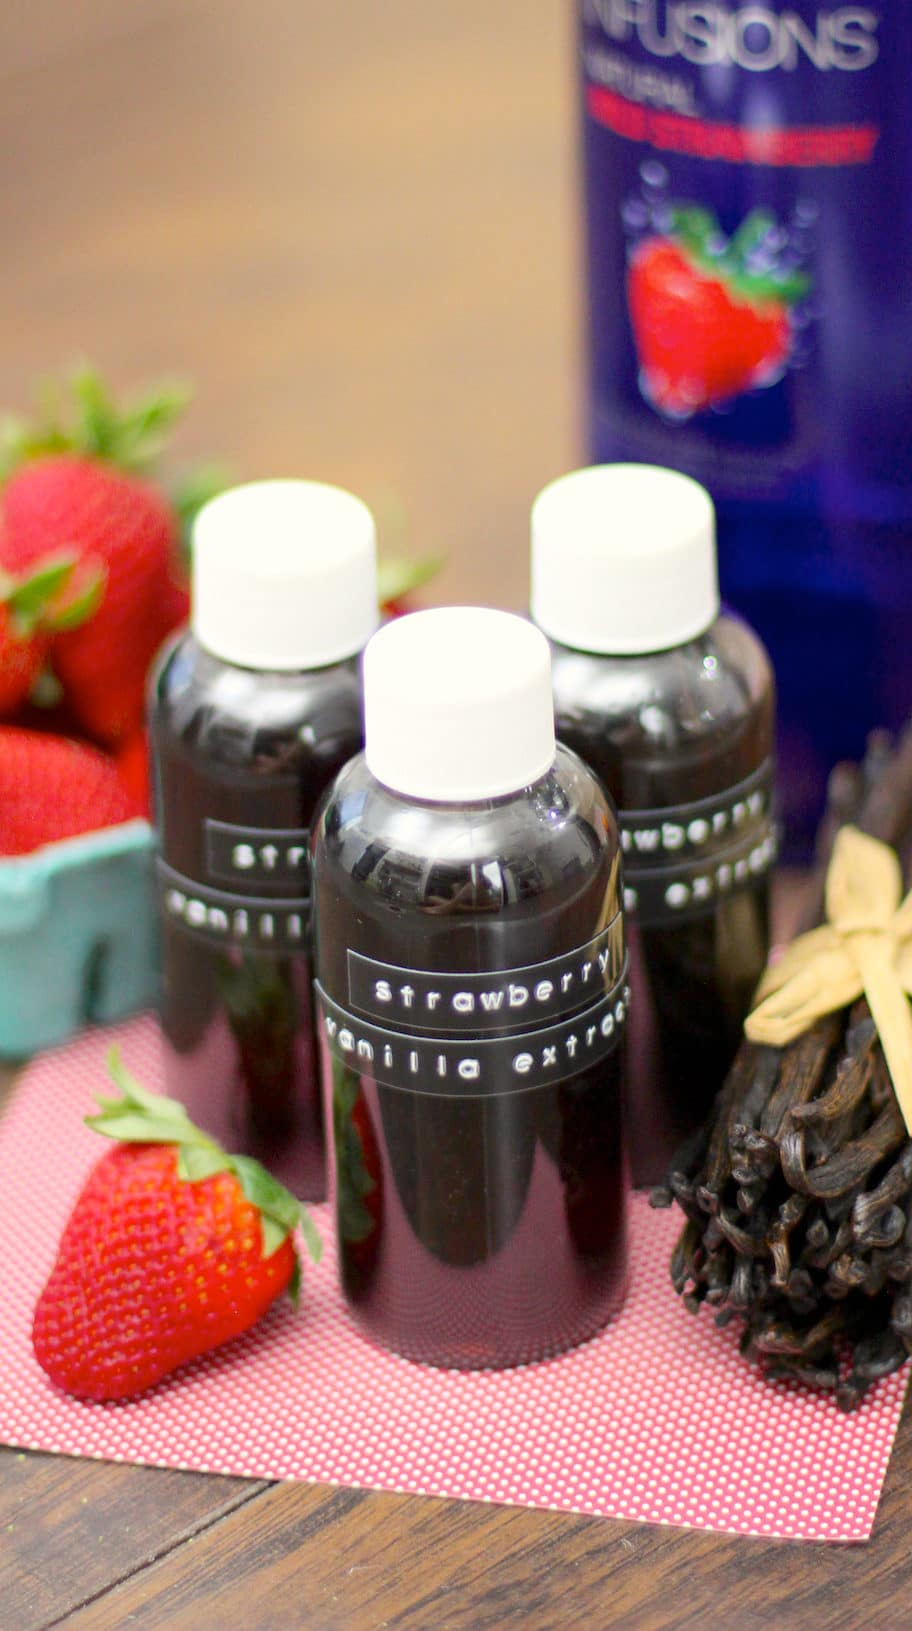 Do you ever wish Vanilla Extract had a little more oomph? Well, now it does! This super easy, 2-ingredient strawberry-infused homemade Vanilla Extract is perfect for cakes, frostings, ice creams and more!